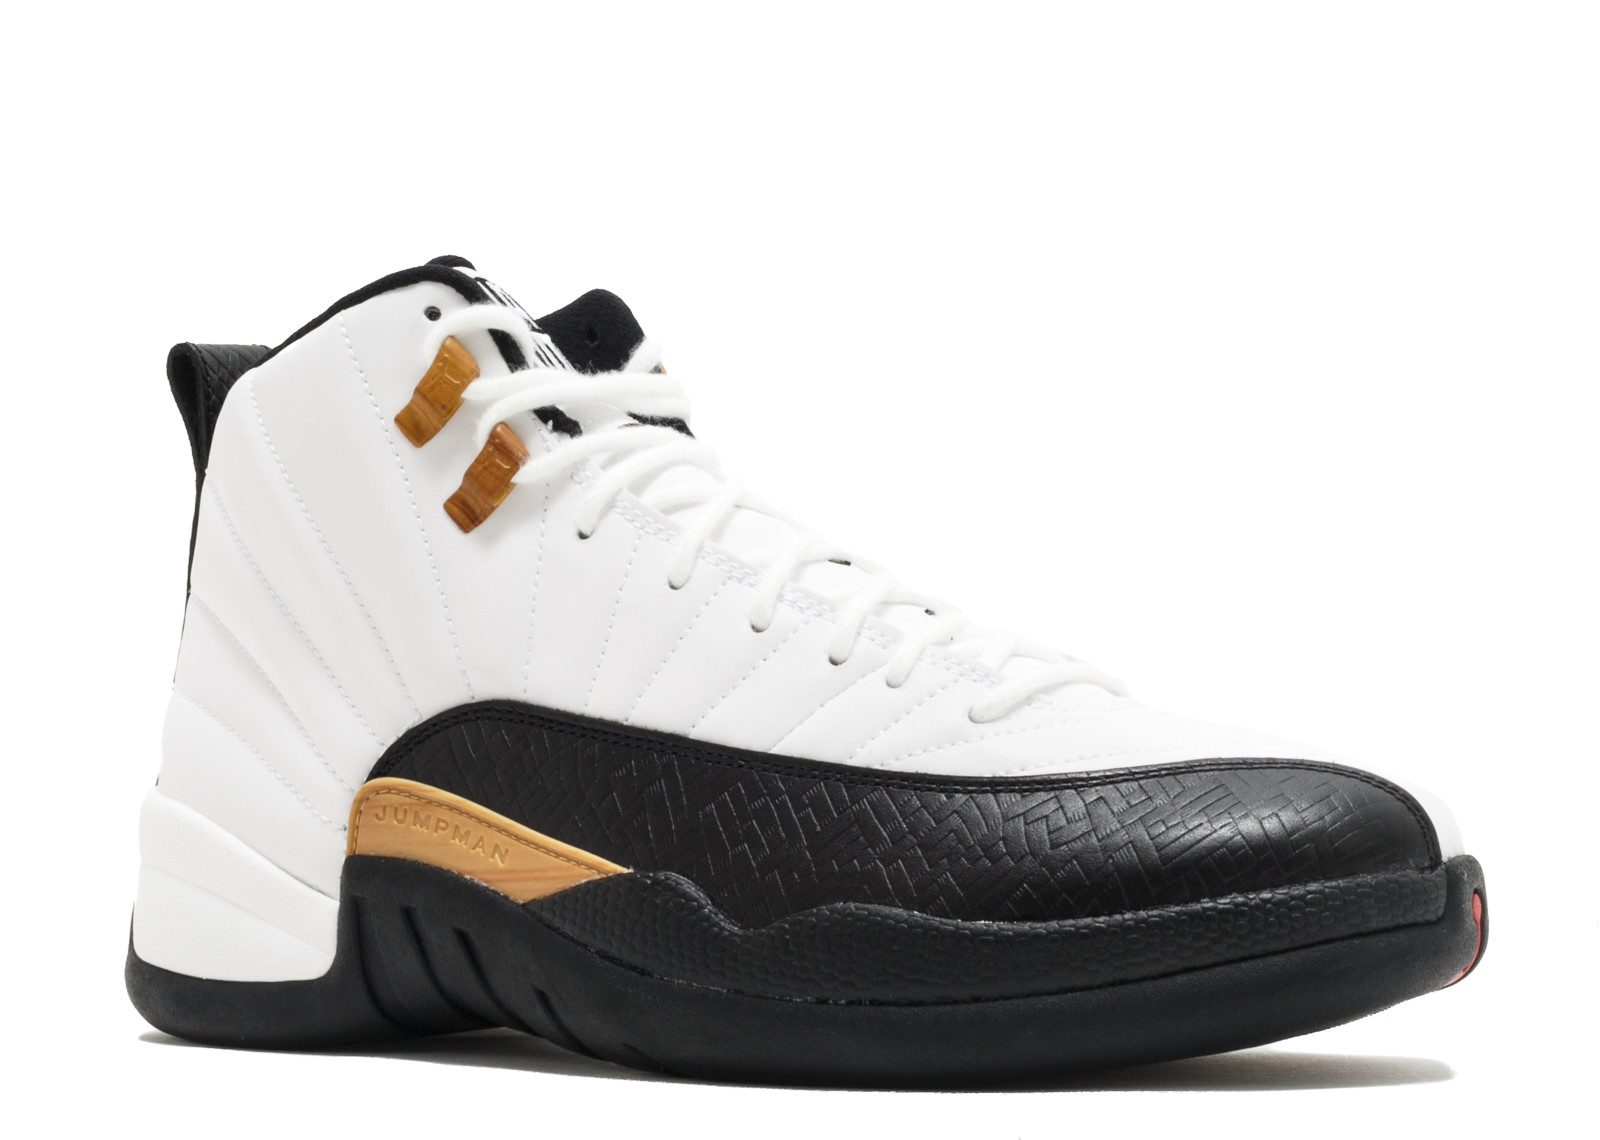 outlet store d392f cf754 Air Jordan - Men - Air Jordan 12 Retro Cny  Chinese New Year  - 881427-122  - Size 9